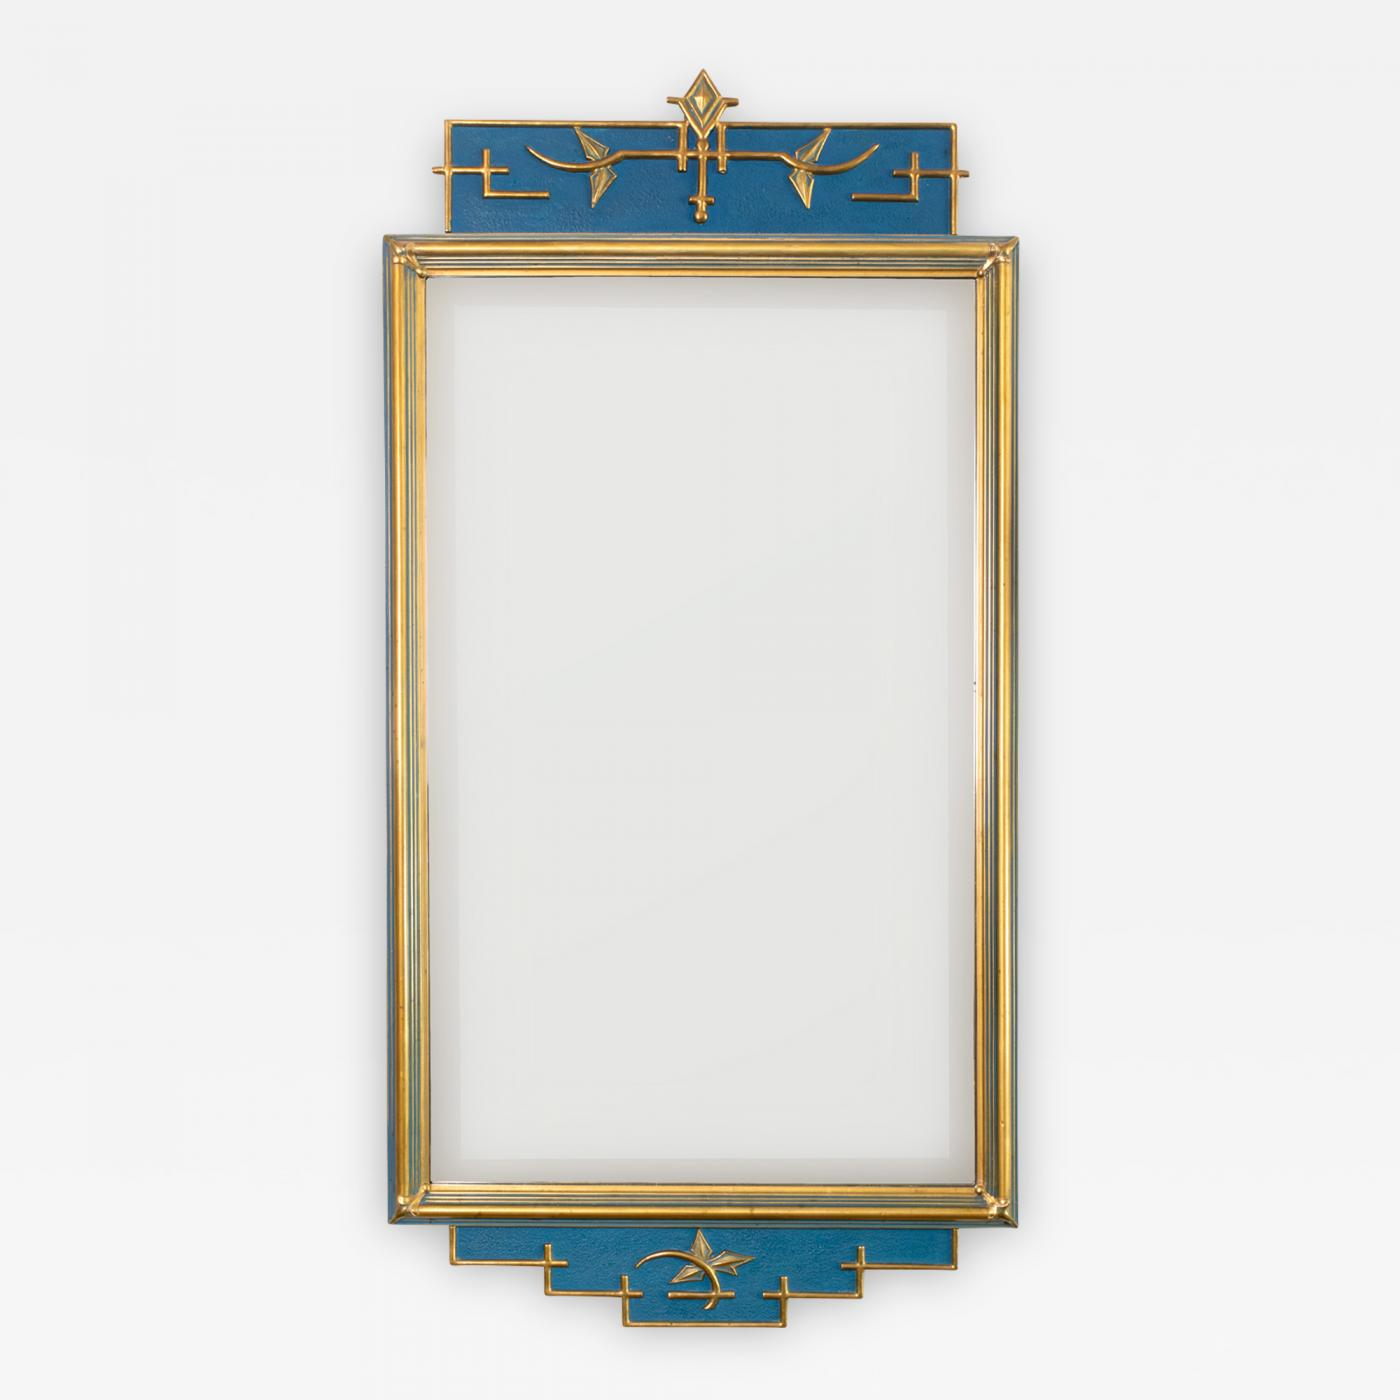 C J Eriksson Co Swedish Art Deco Mirror In Blue And Gold By C J Eriksson Co